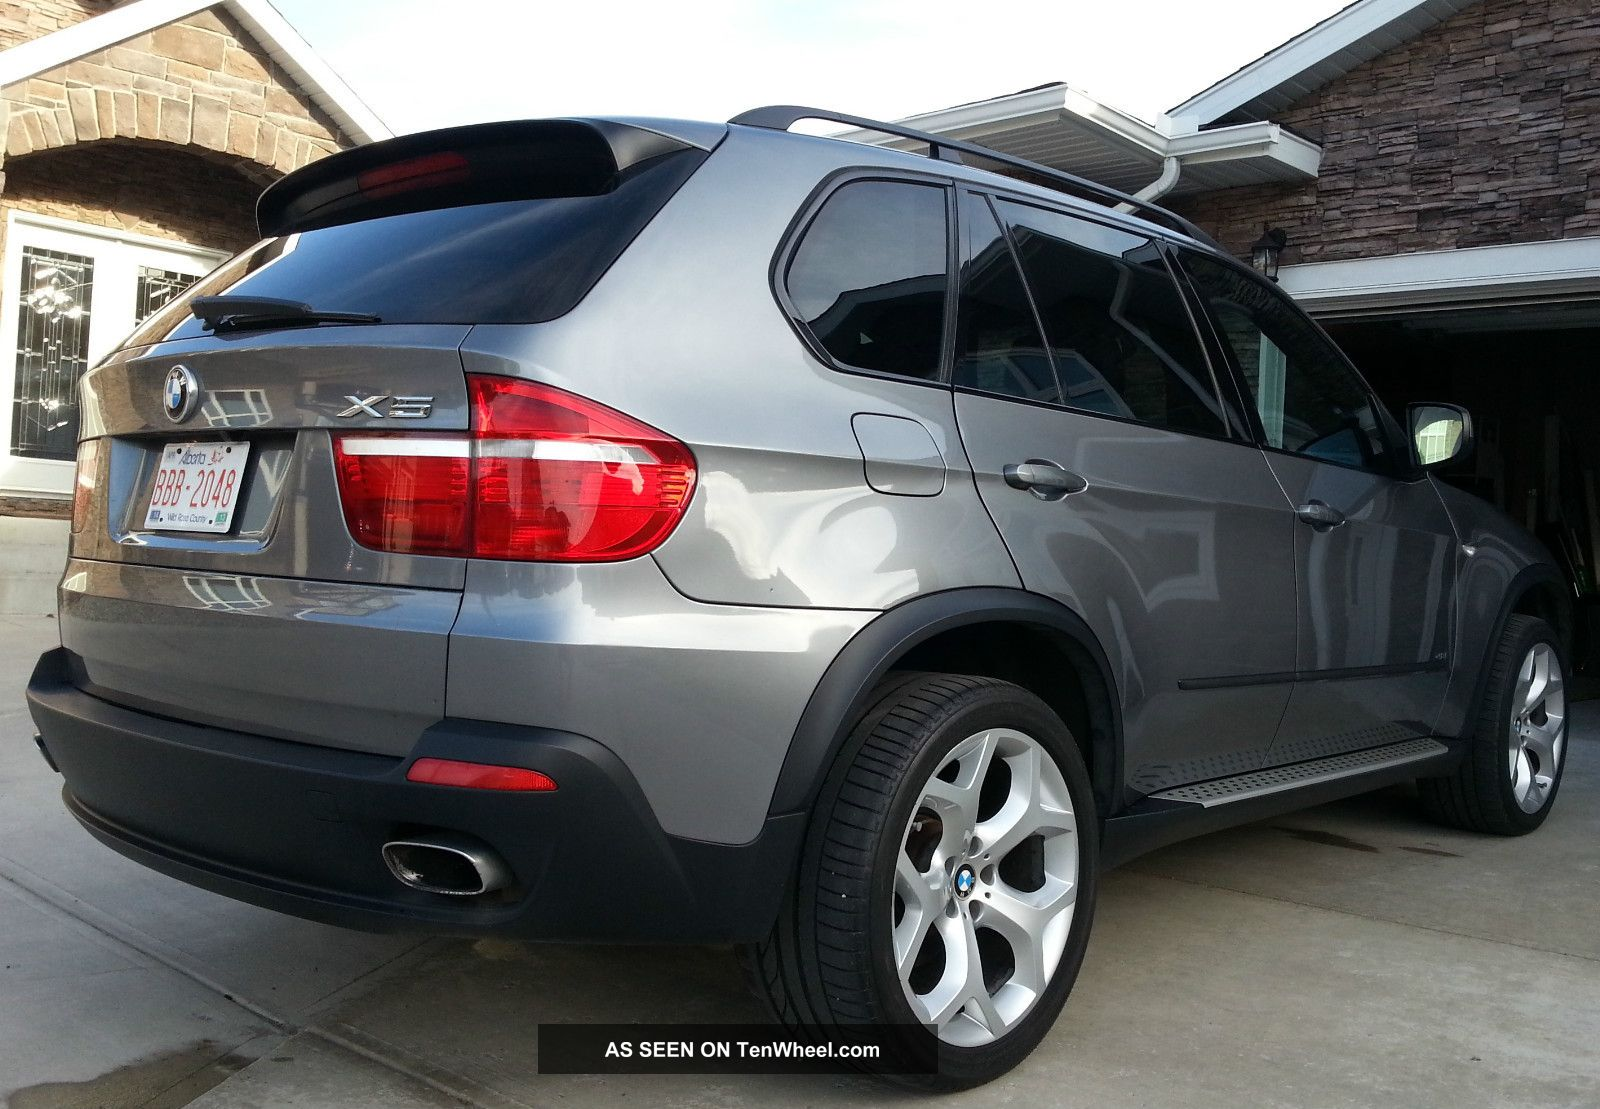 2008 bmw x5 4 8i sport suv private 2 sets of wheels autocheck report. Black Bedroom Furniture Sets. Home Design Ideas